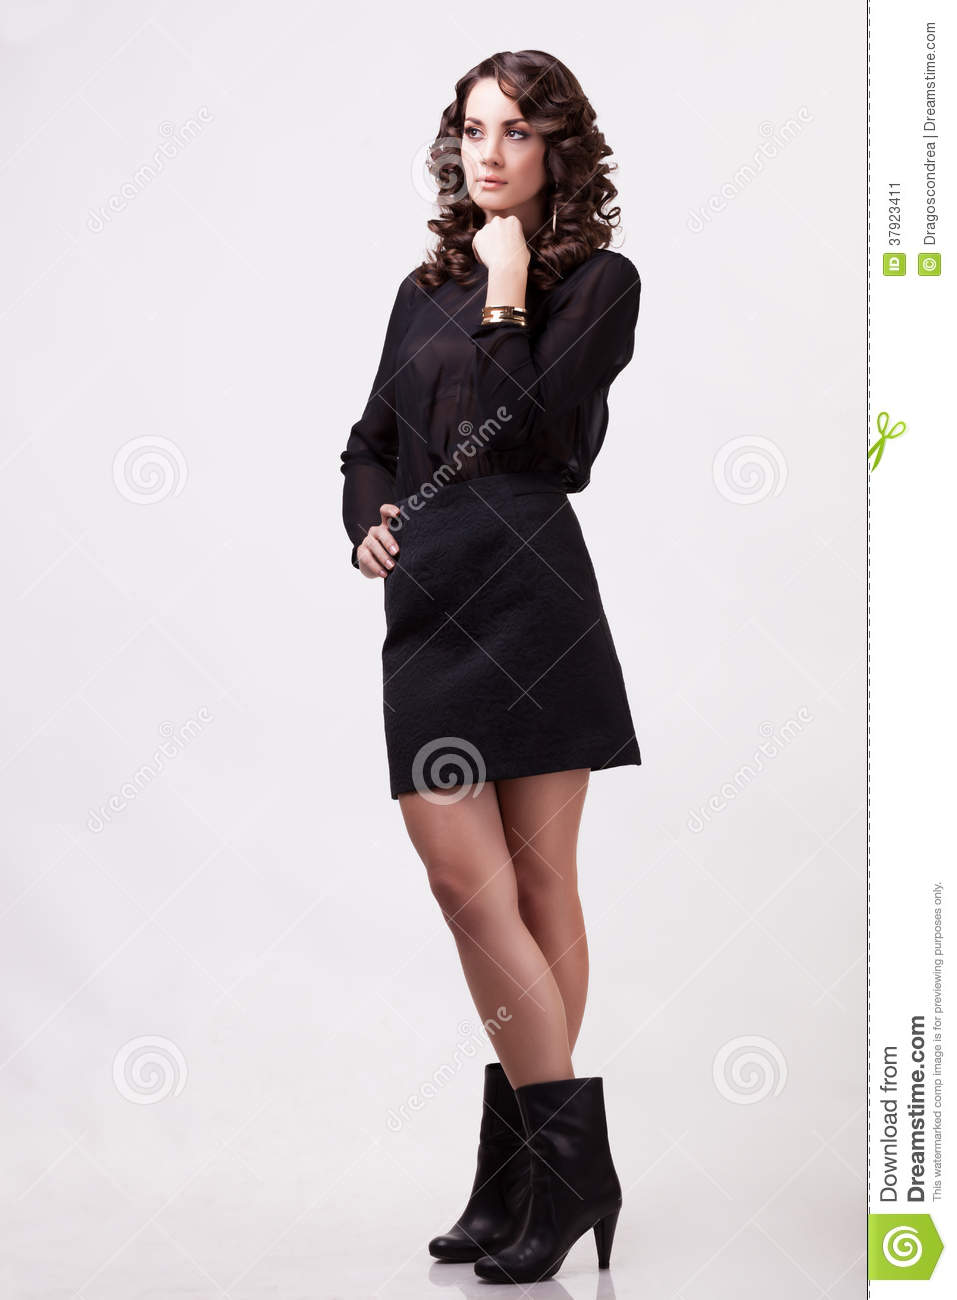 beautiful girl full body on grey background stock image